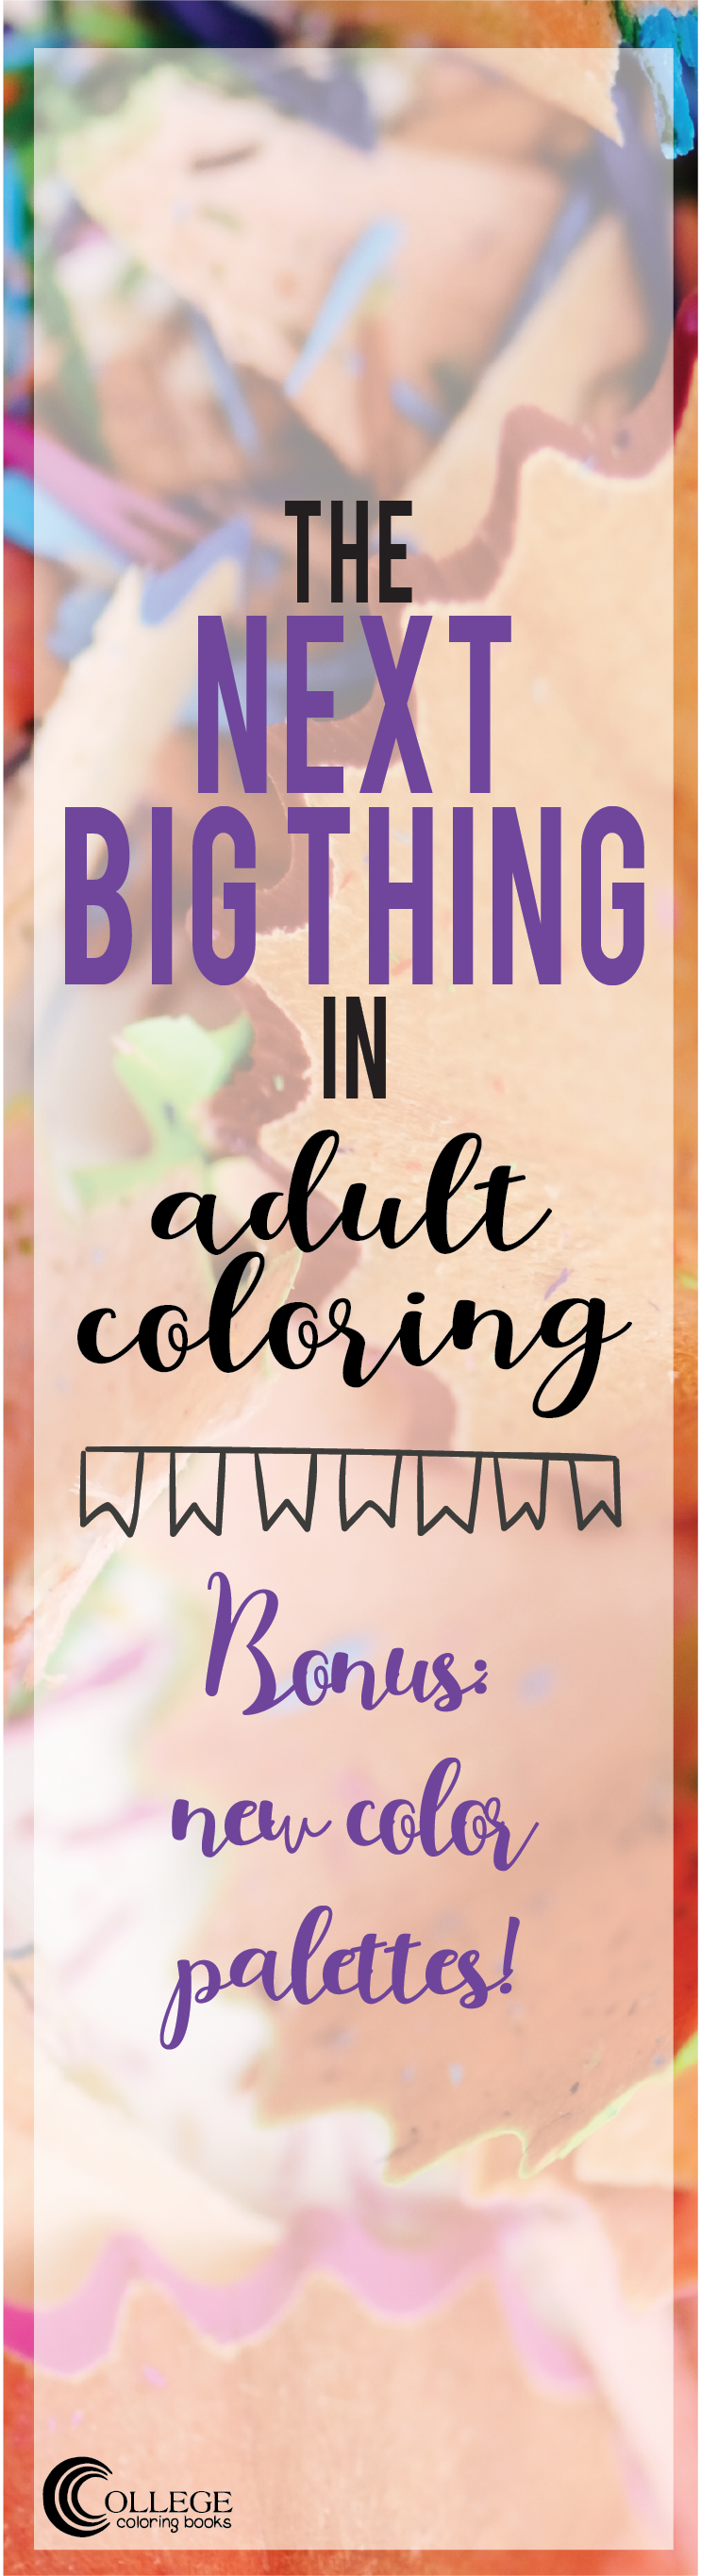 College Coloring Books The Next Big Thing in Adult Coloring Pinterest Long Pin